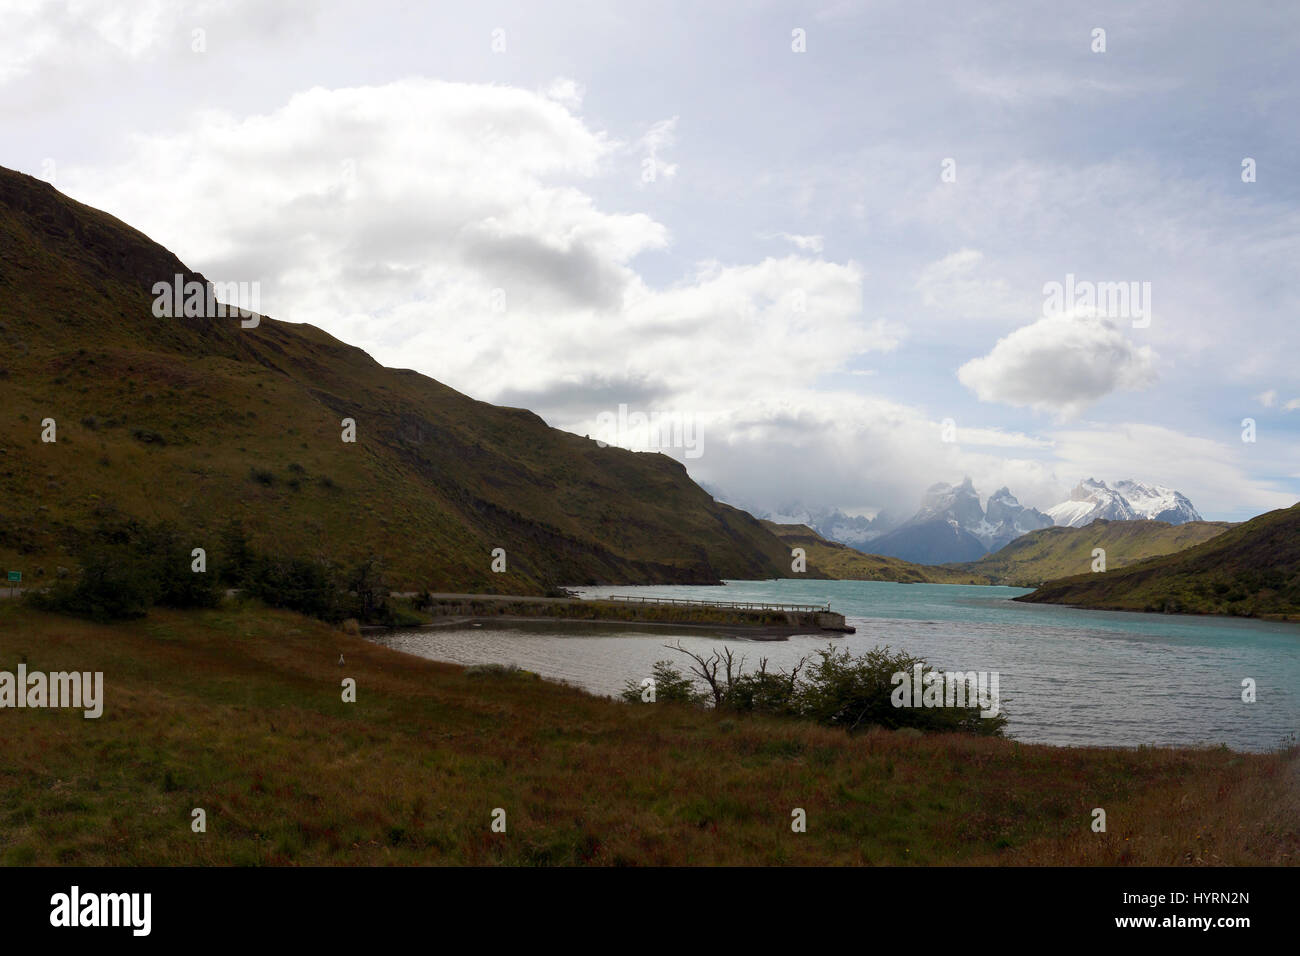 Lake and moutains in a very cloudy day at Patagonia Stock Photo